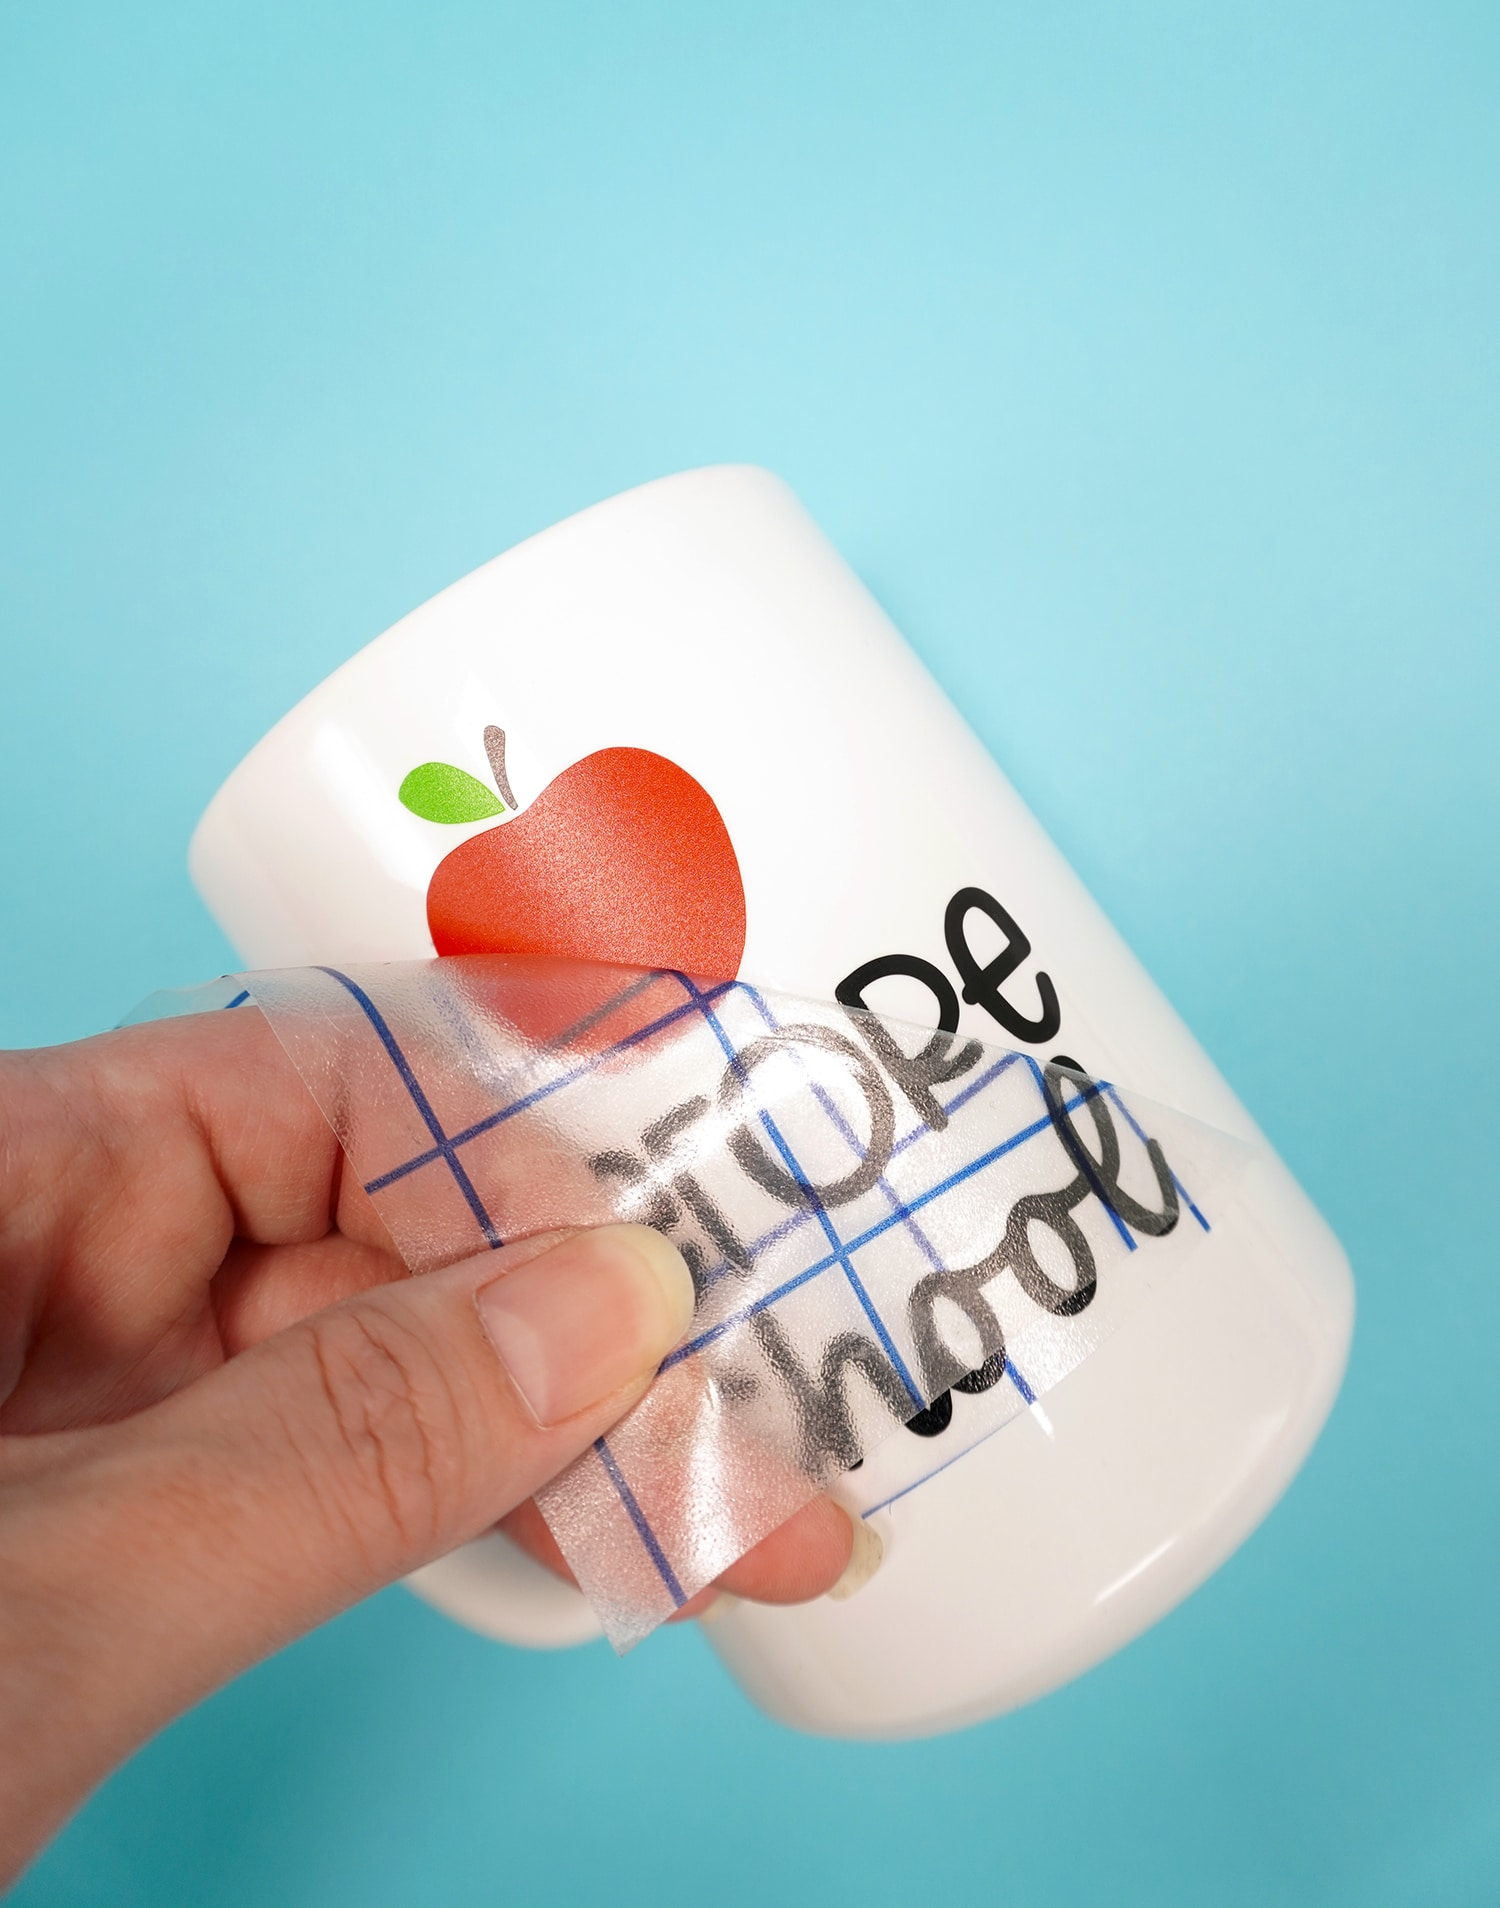 White mug on blue background - peeling transfer tape to reveal apple design